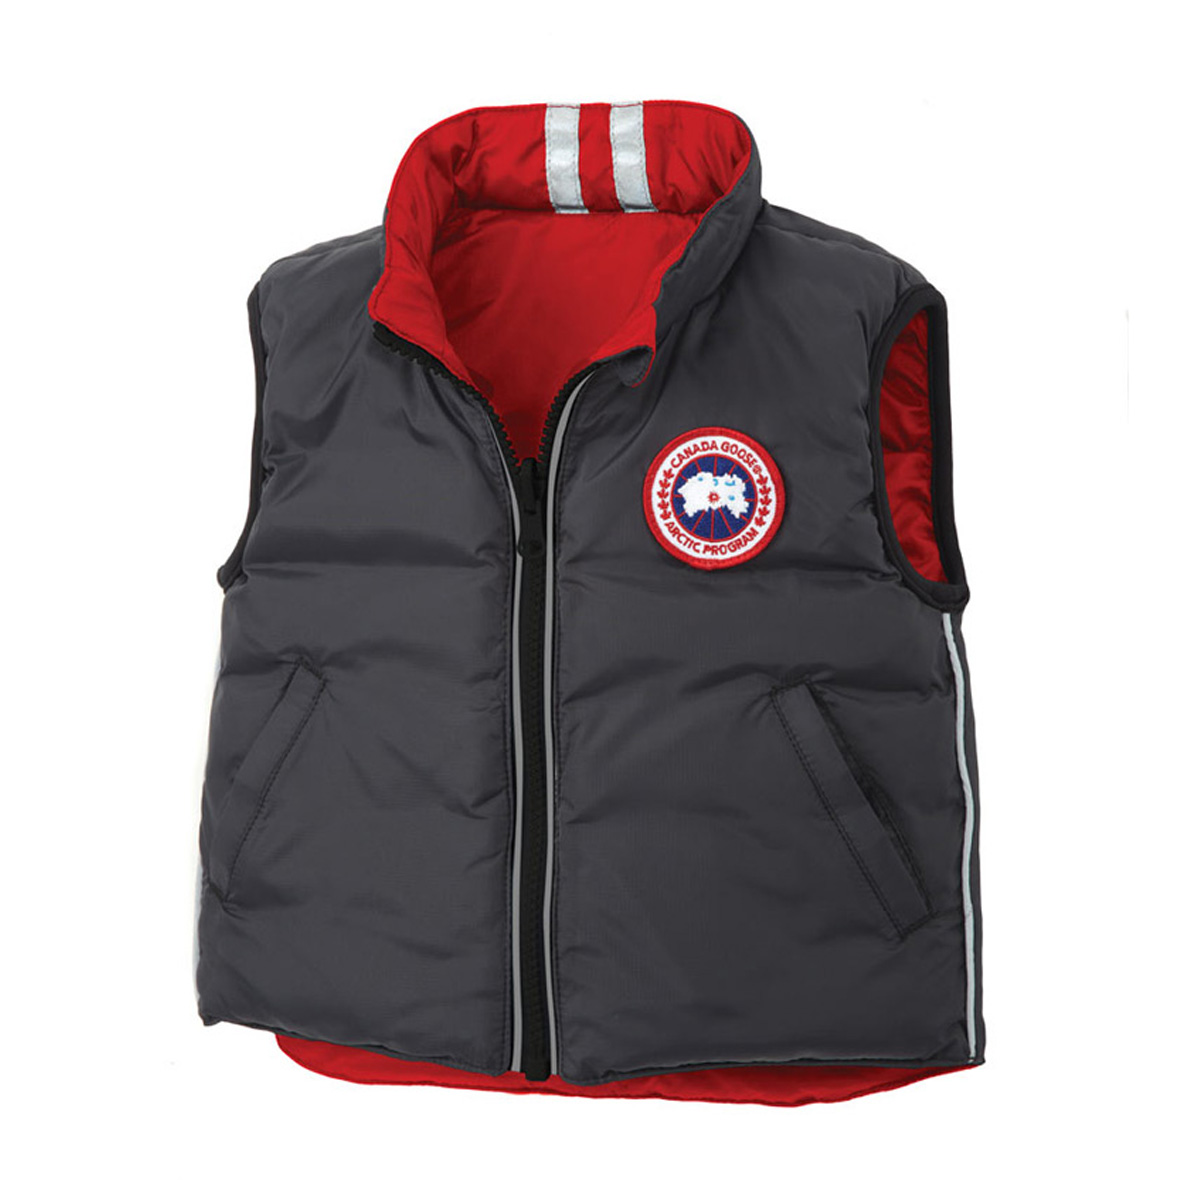 Canada Goose Infants [0M-12M] Cub Reversible Vest BLACK RED